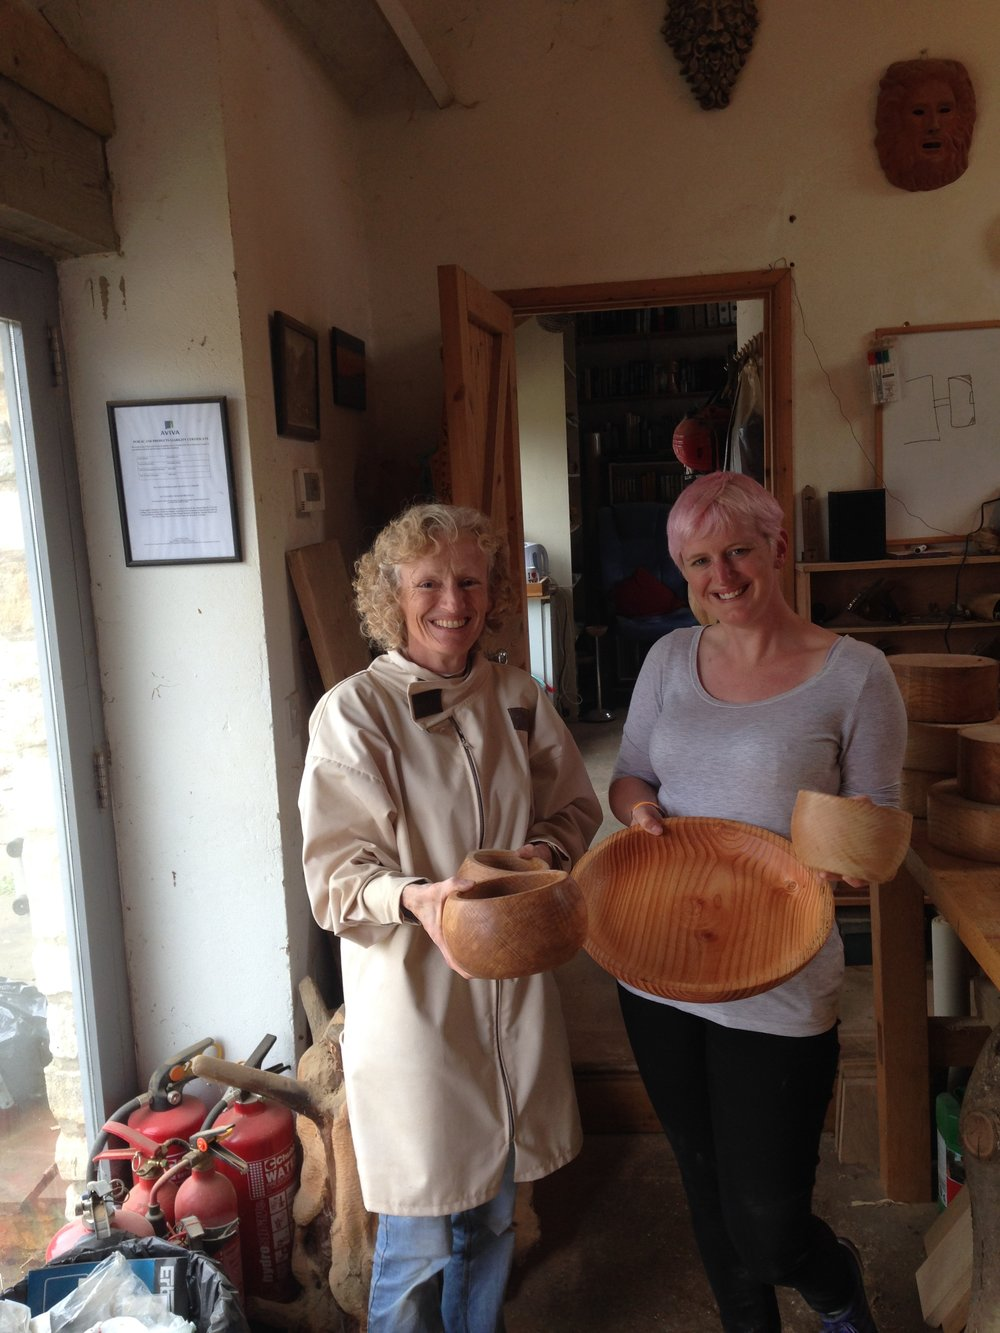 Mother & daughter at the end of a busy day wood turning for the first time.